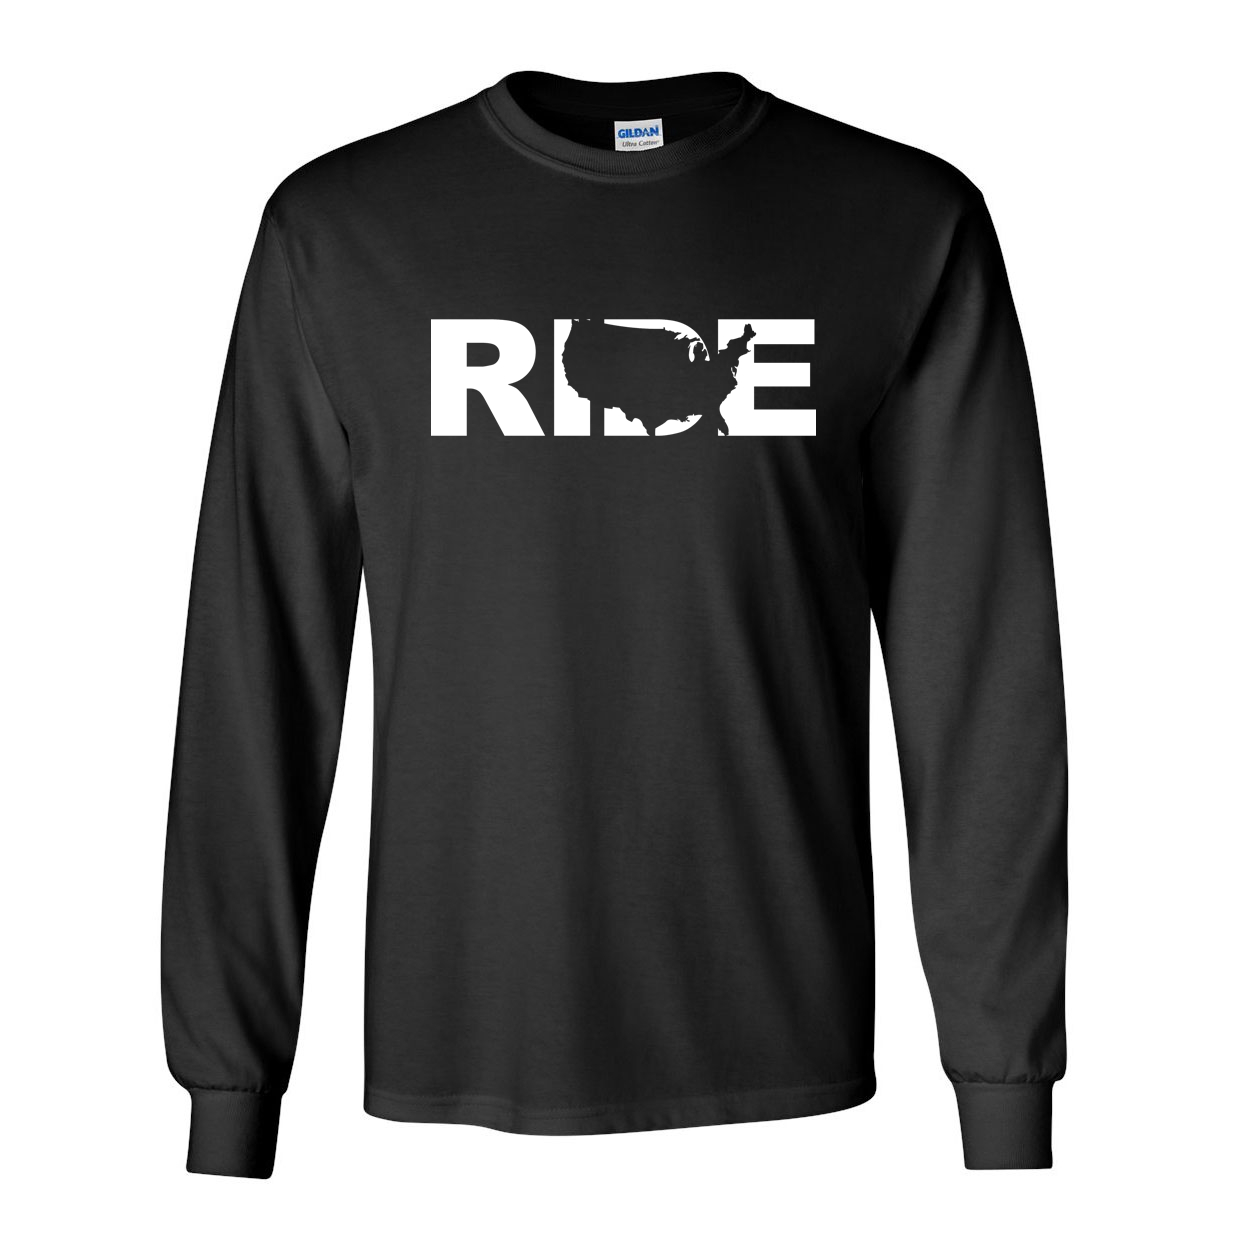 Ride United States Classic Long Sleeve T-Shirt Black (White Logo)